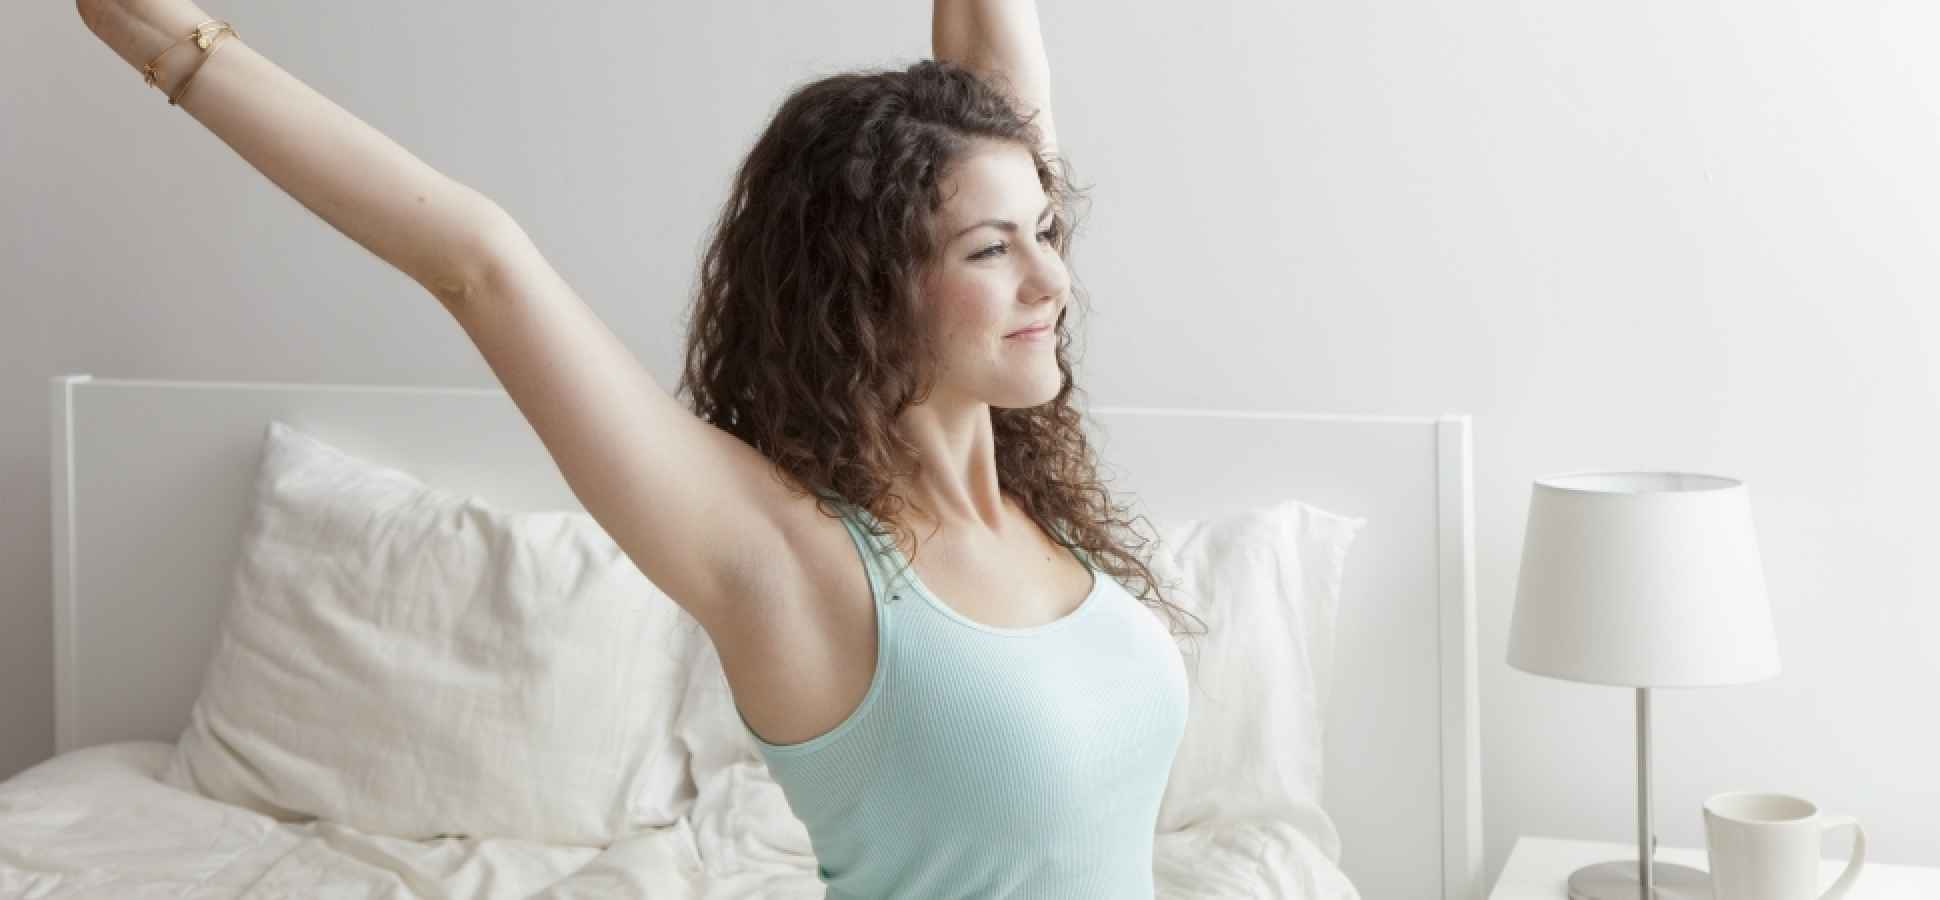 10 Ways You Can Use Your Mornings More Productively